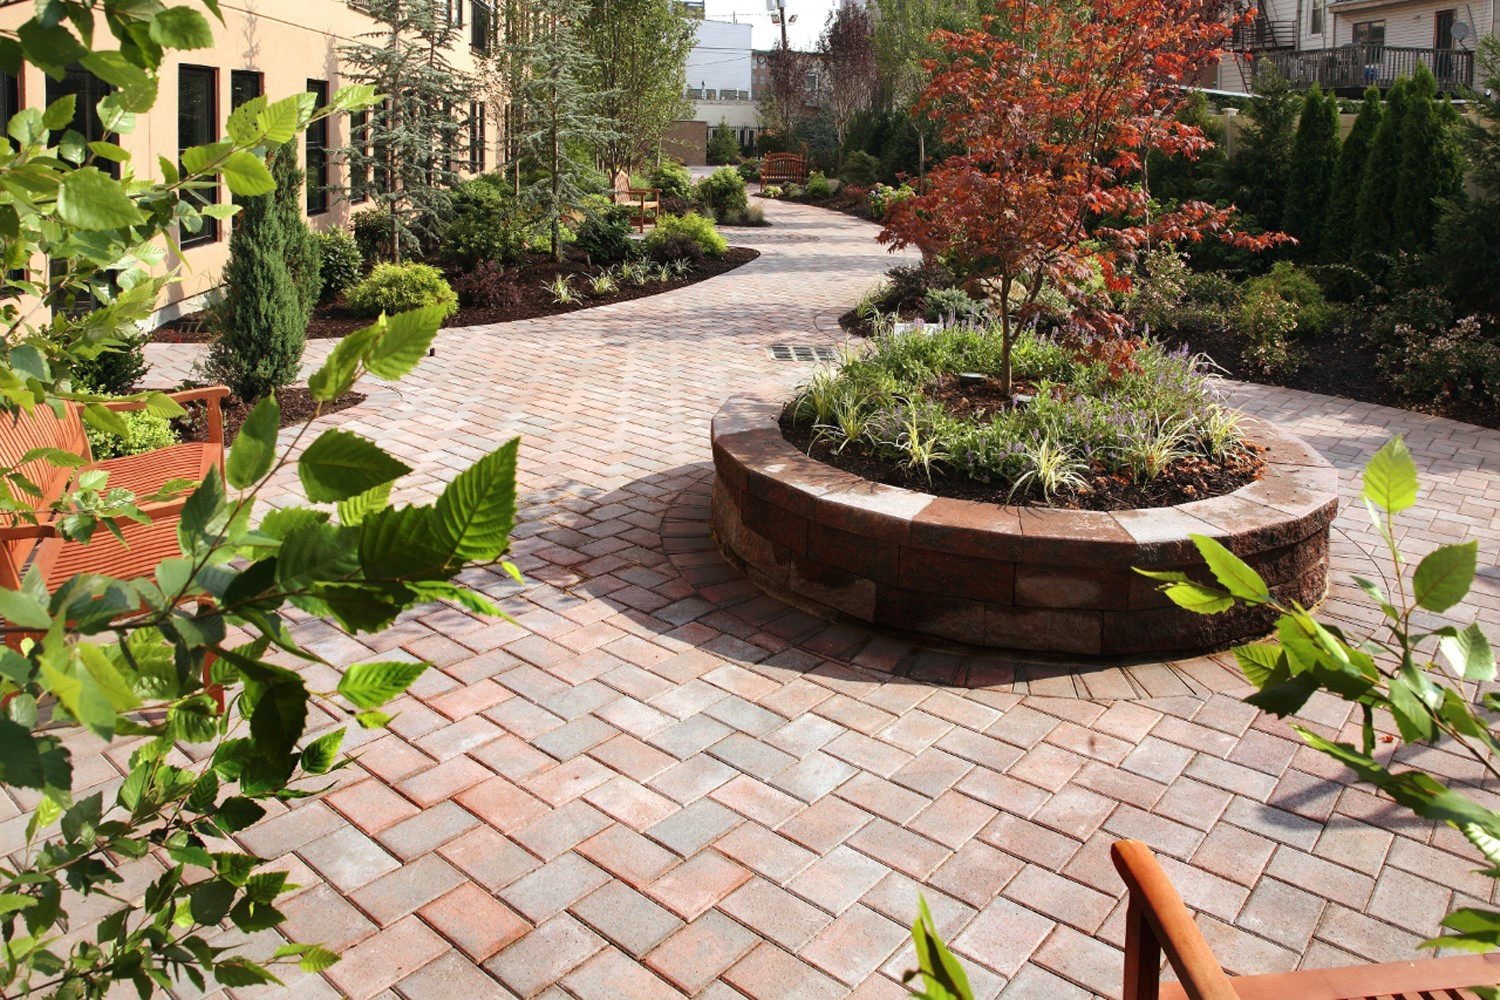 Hardscaping certification gives landscapers a competitive edge